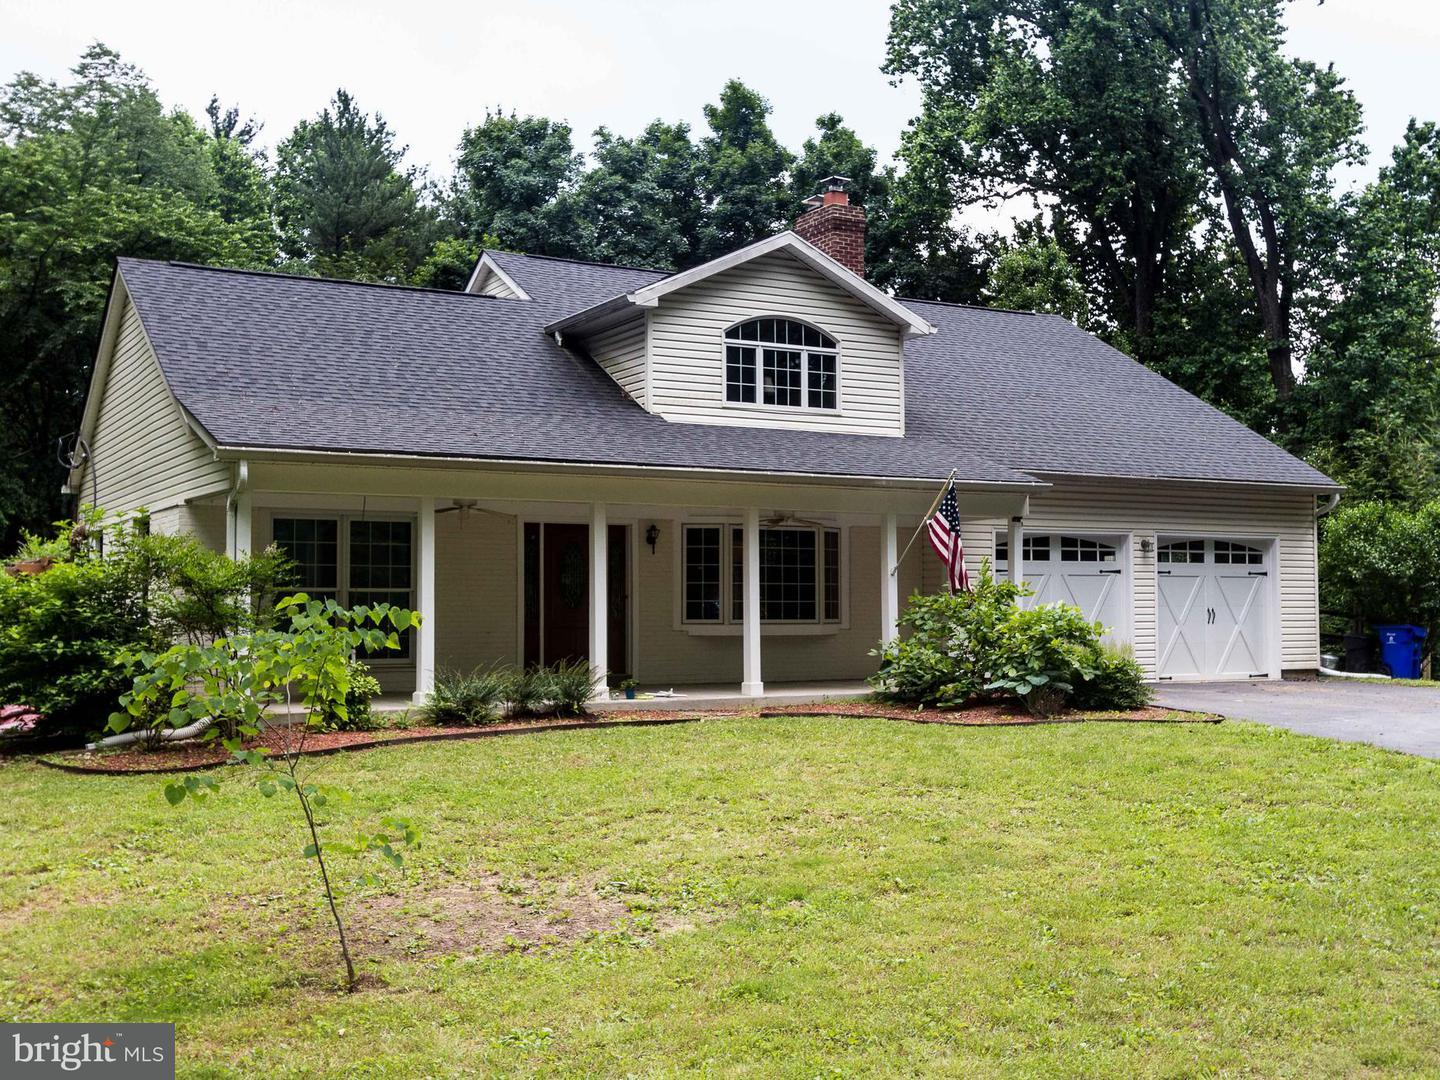 Other Residential for Rent at 11489 Johns Hopkins Rd Clarksville, Maryland 21029 United States